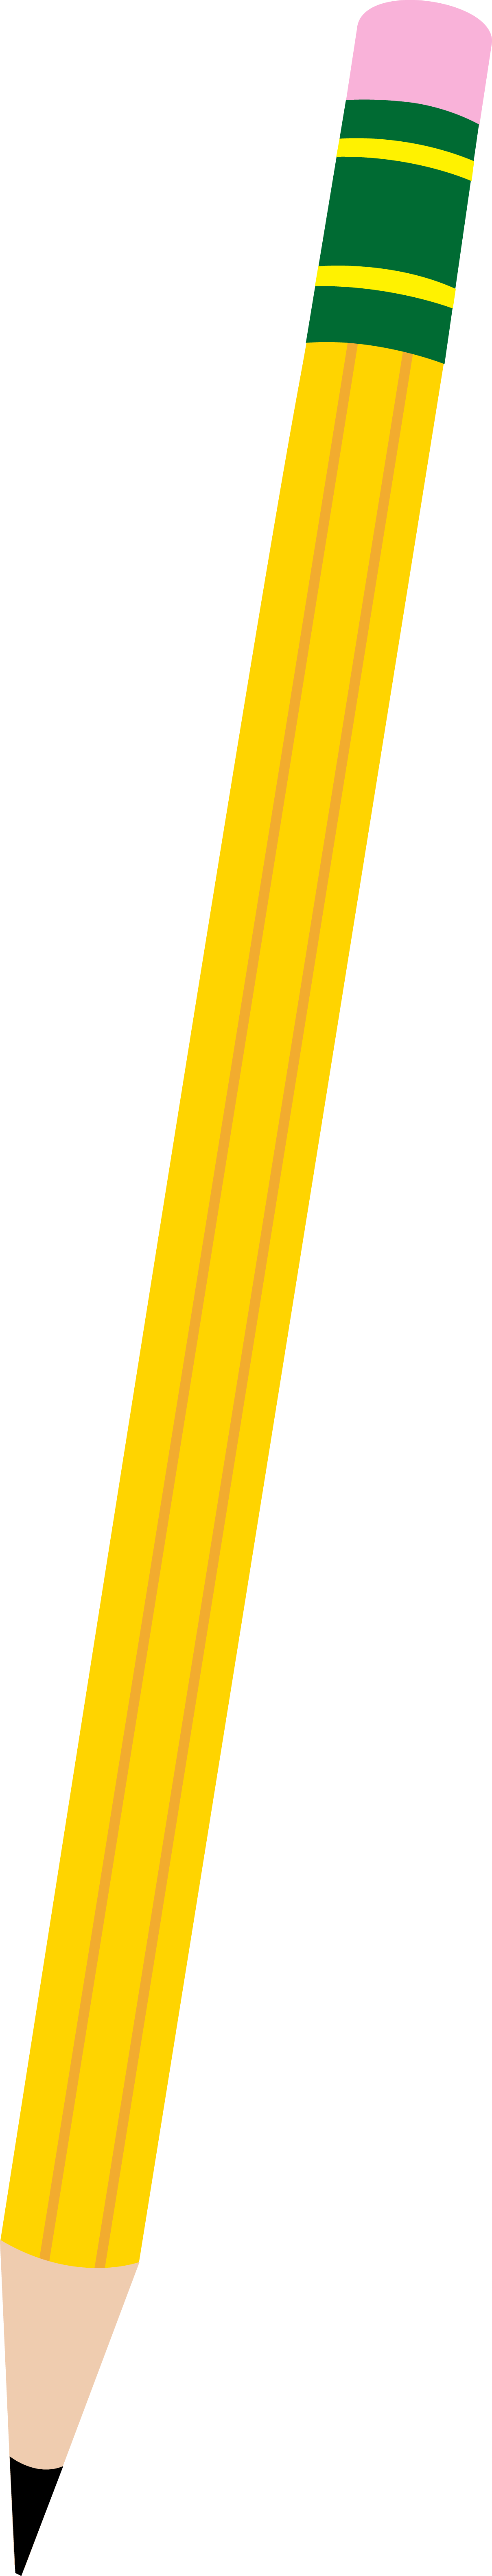 Letters format picture of. Clipart png pencil